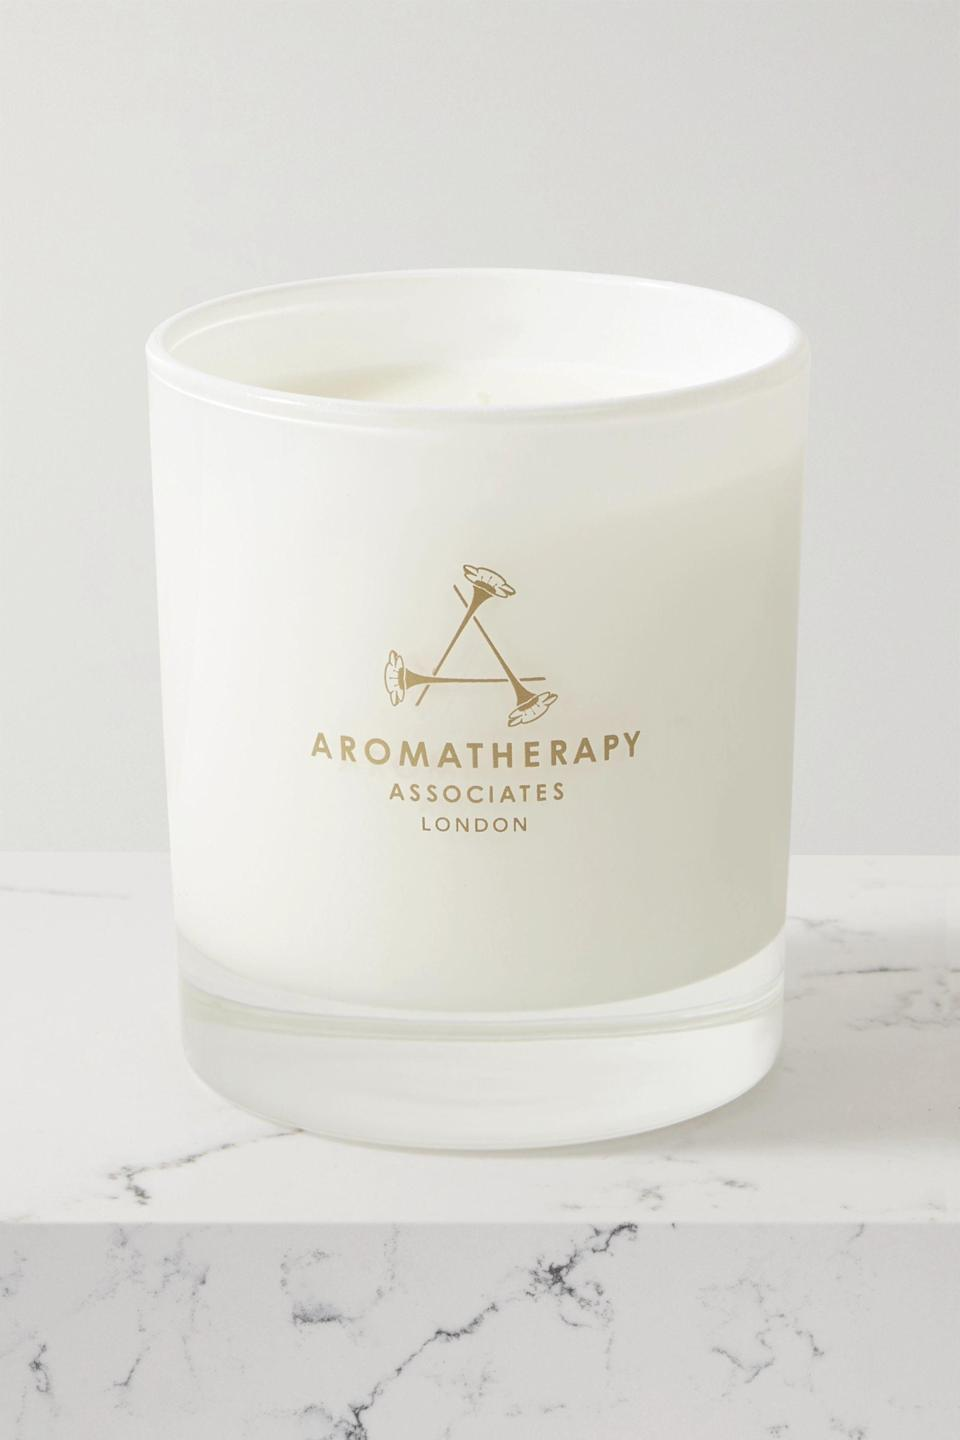 "<p><strong>Aromatherapy Associates</strong></p><p>net-a-porter.com</p><p><strong>$69.00</strong></p><p><a href=""https://go.redirectingat.com?id=74968X1596630&url=https%3A%2F%2Fwww.net-a-porter.com%2Fen-us%2Fshop%2Fproduct%2Faromatherapy-associates%2Finner-strength-candle%2F1261834&sref=https%3A%2F%2Fwww.cosmopolitan.com%2Flifestyle%2Fg28518643%2Fluxury-candles%2F"" rel=""nofollow noopener"" target=""_blank"" data-ylk=""slk:Shop Now"" class=""link rapid-noclick-resp"">Shop Now</a></p><p>How good does a spa day sound RN? Channel a relaxing retreat at-home with this candle that exudes a peaceful ambiance. The essential oils work together to create a soothing experience when lit. </p>"